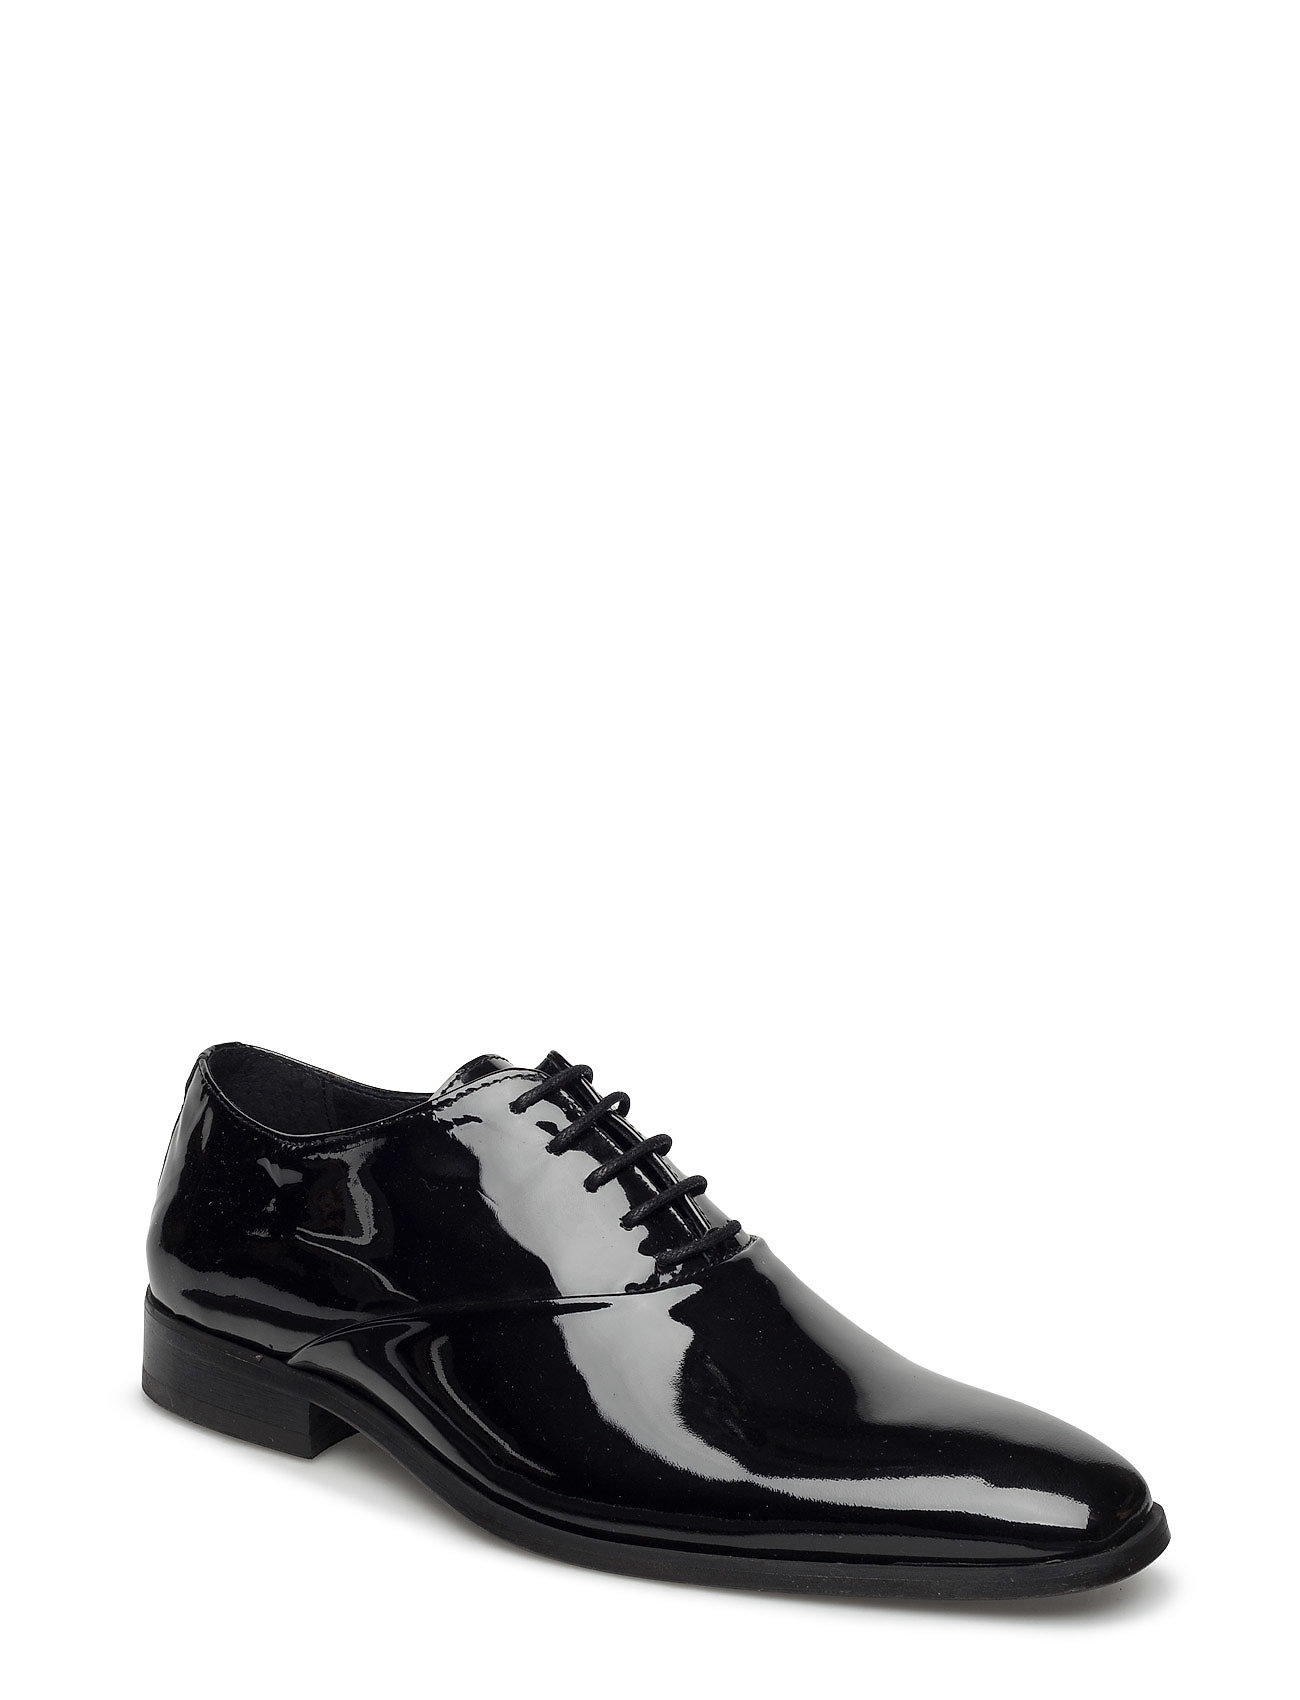 Image of Patent Shoe Shoes Business Formal Shoes Sort Playboy Footwear (2382629207)